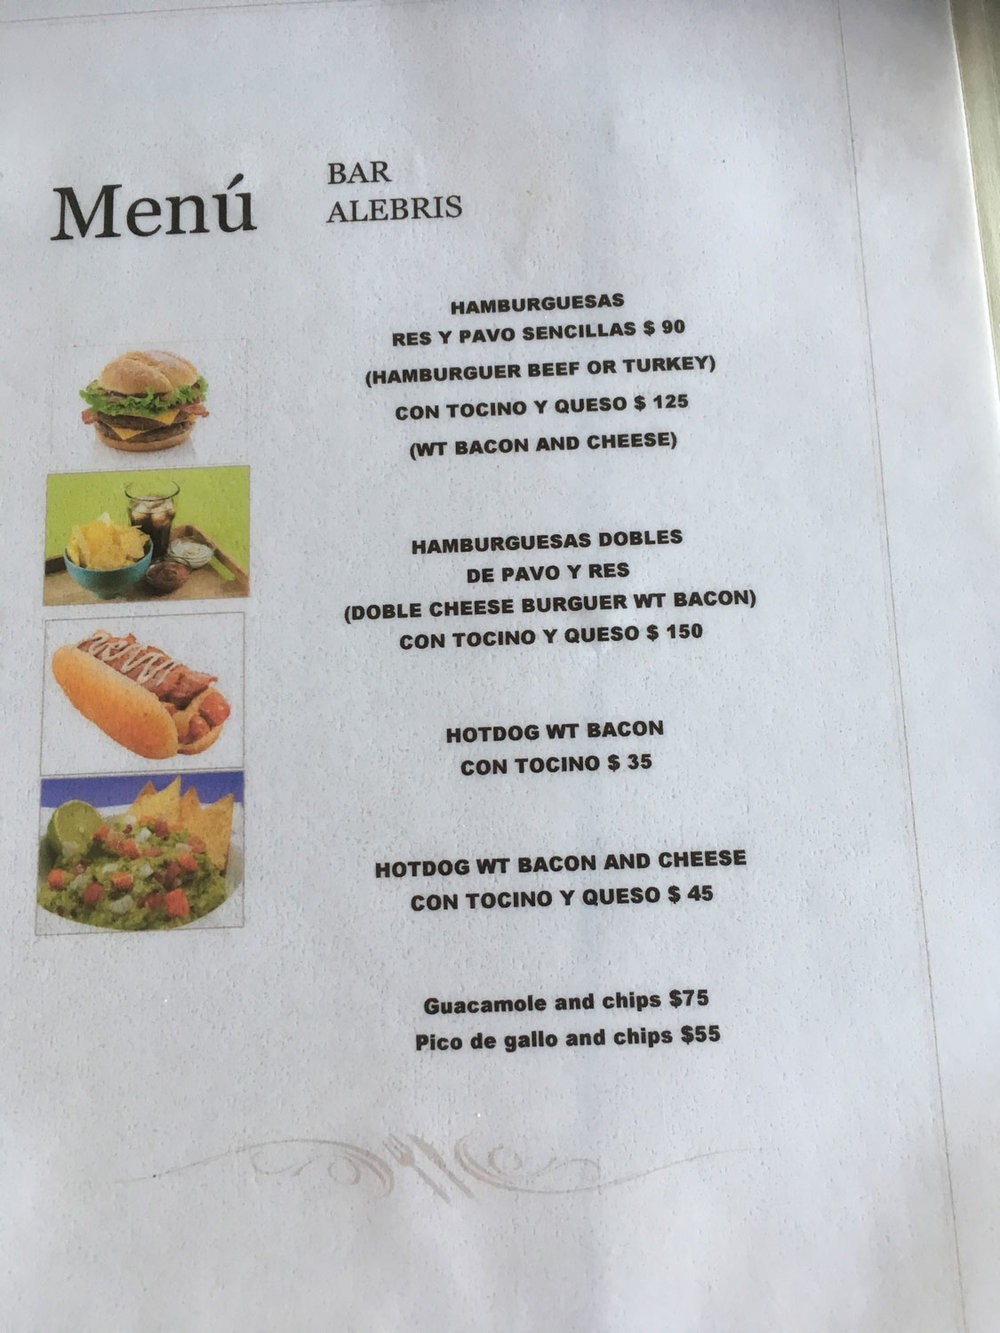 The bar menu. The prices are in Mexican pesos, not dollars.